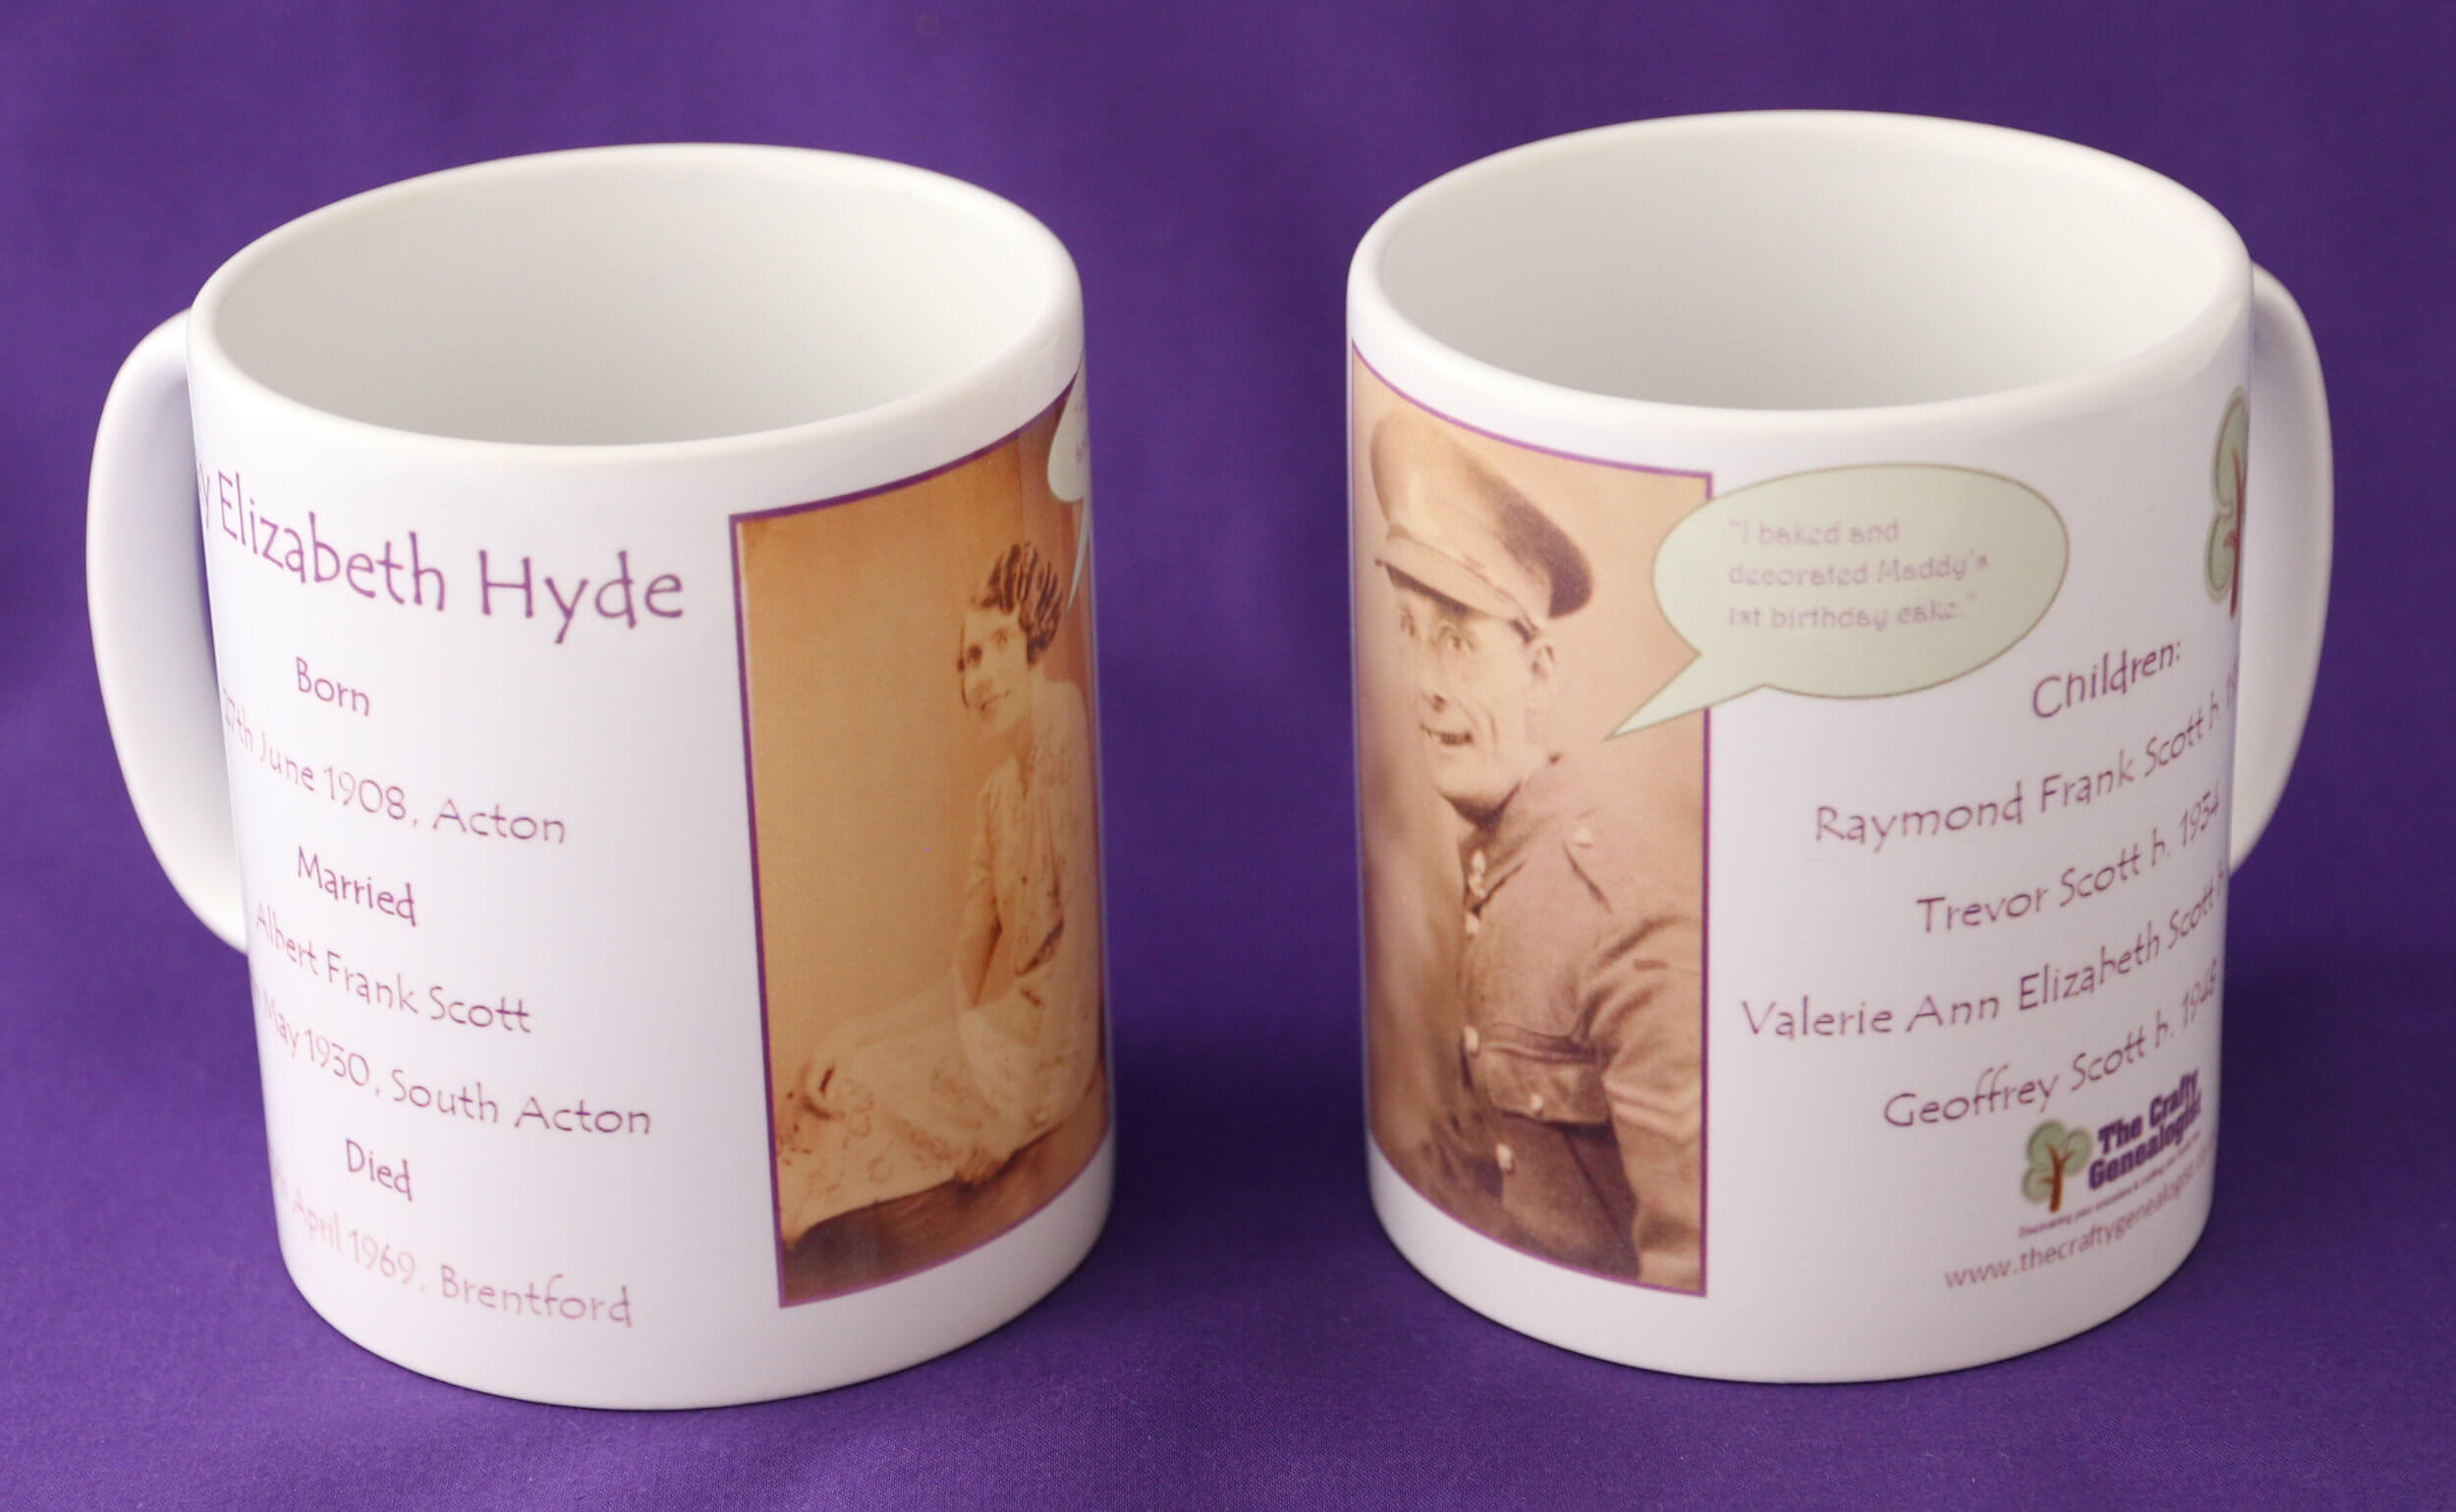 Family Tree mugs personalised with your ancestor's photograph, name, dates and the names of their children